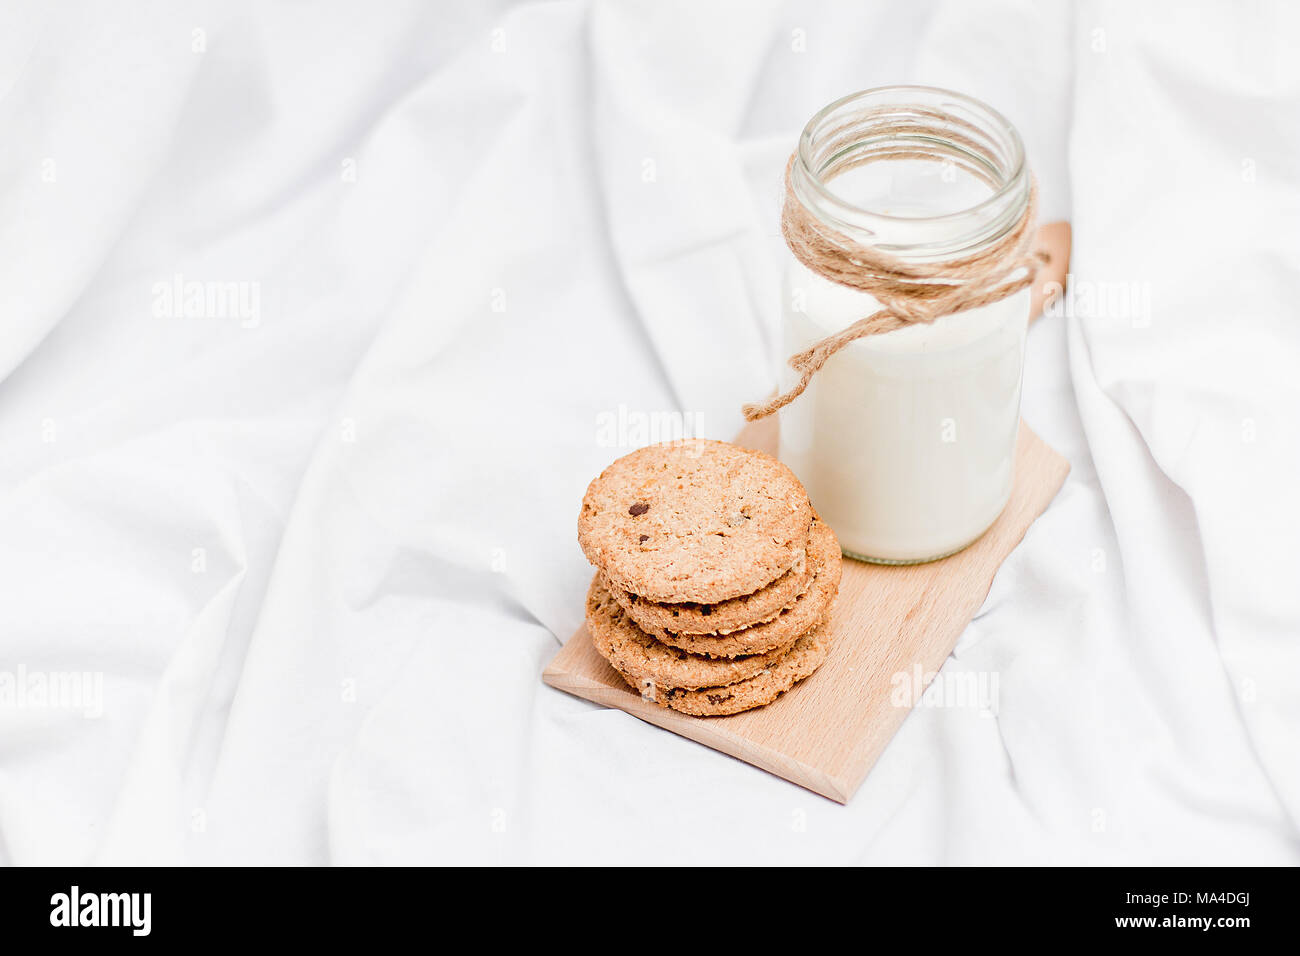 Photo of a jar of milk and cookies on a wooden board on a bed sheet - Stock Image